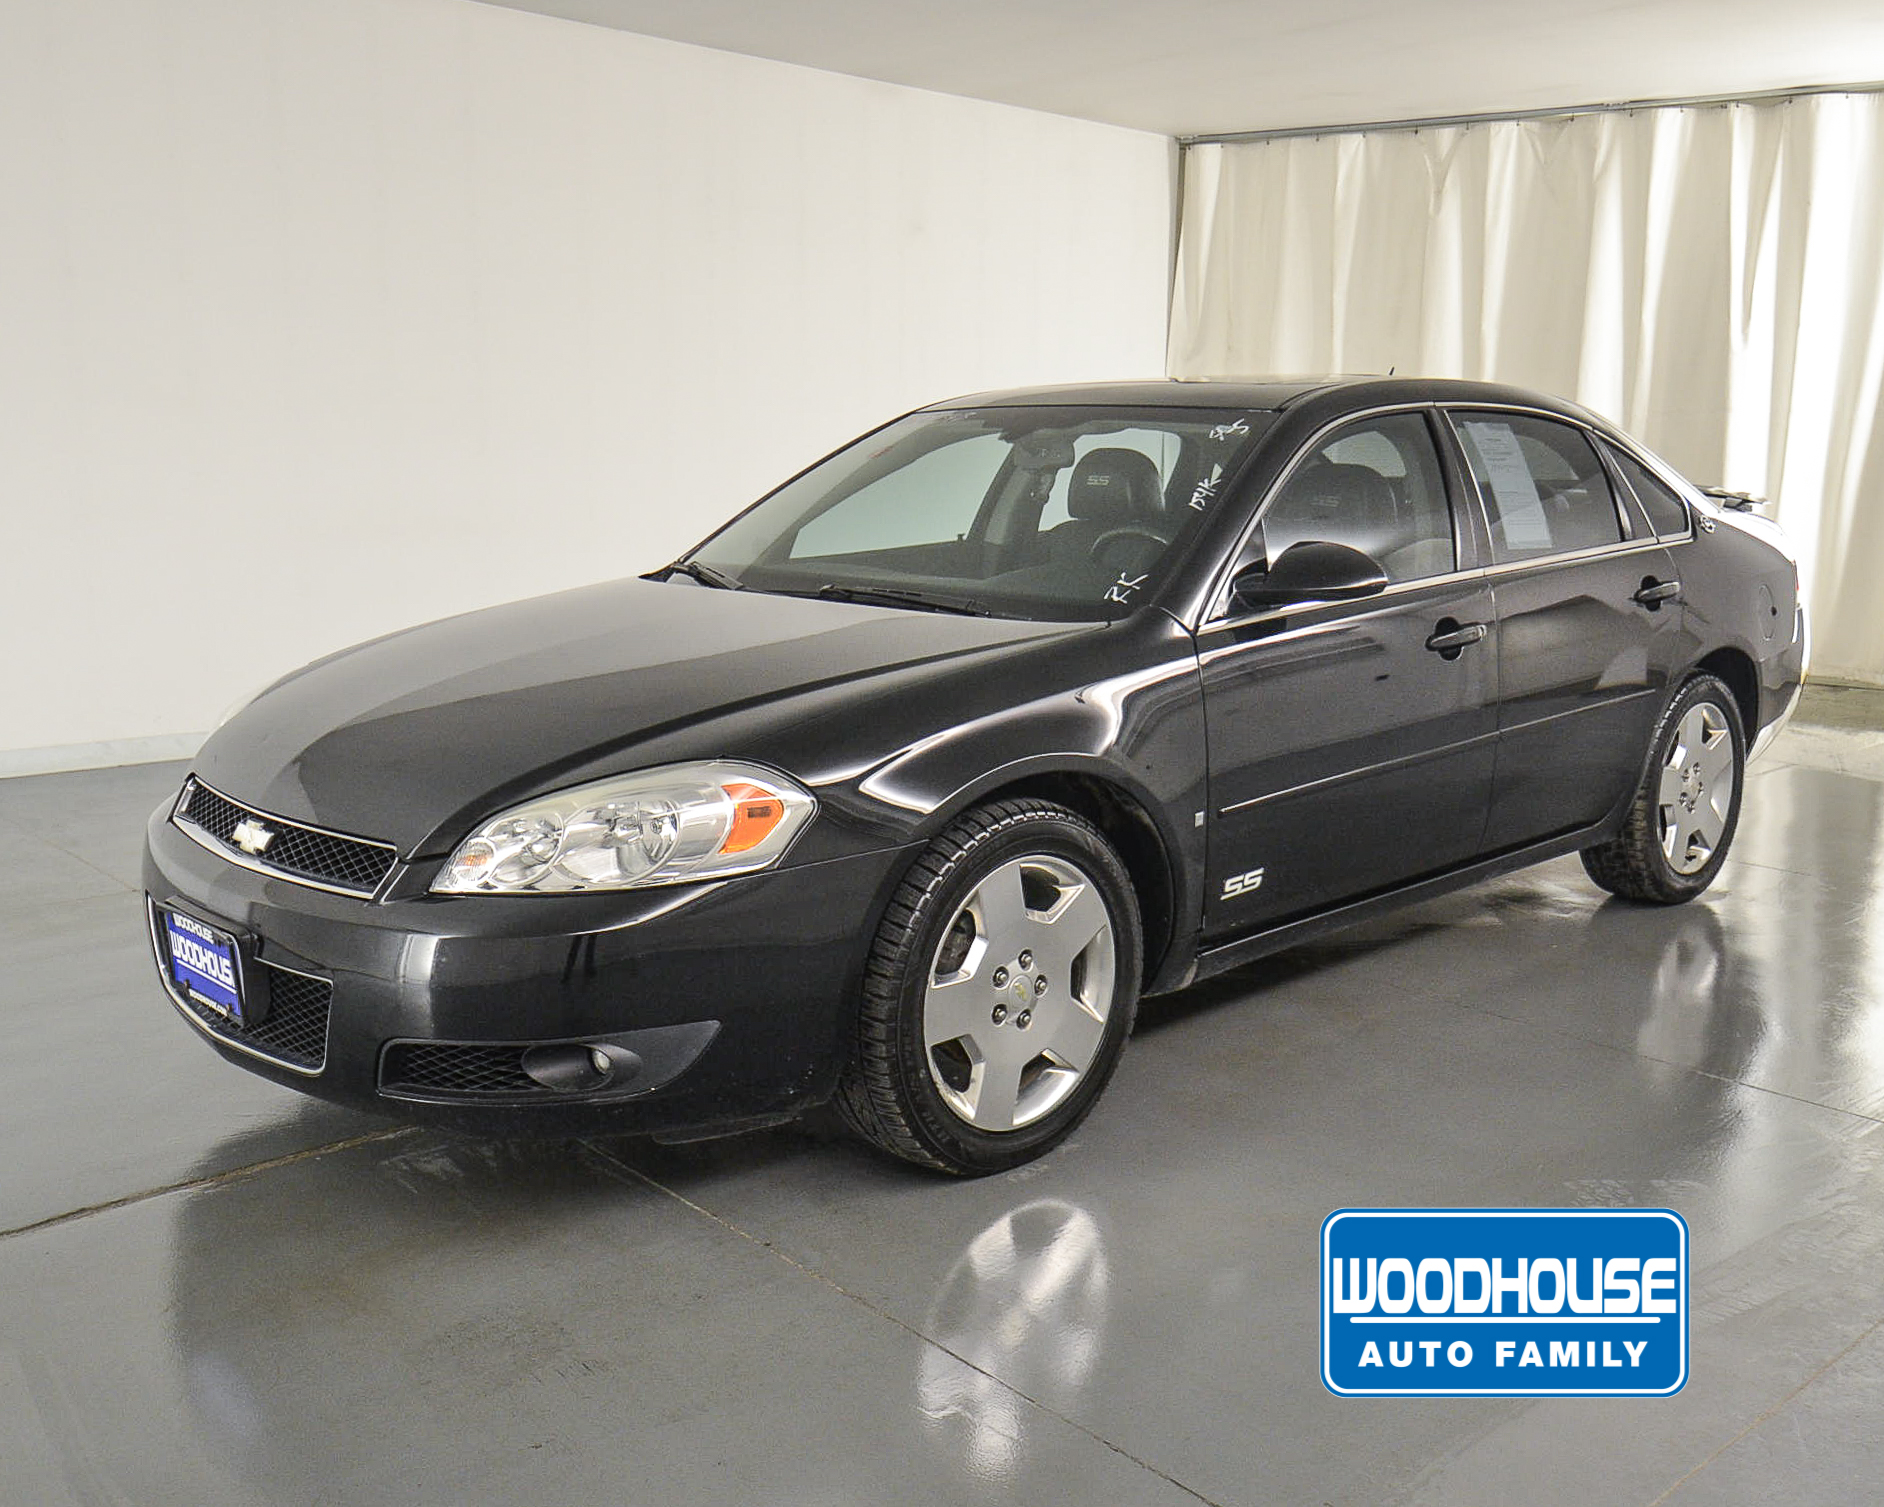 2007 Chevy Impala For Sale >> Woodhouse Used 2007 Chevrolet Impala For Sale Chevy Buick